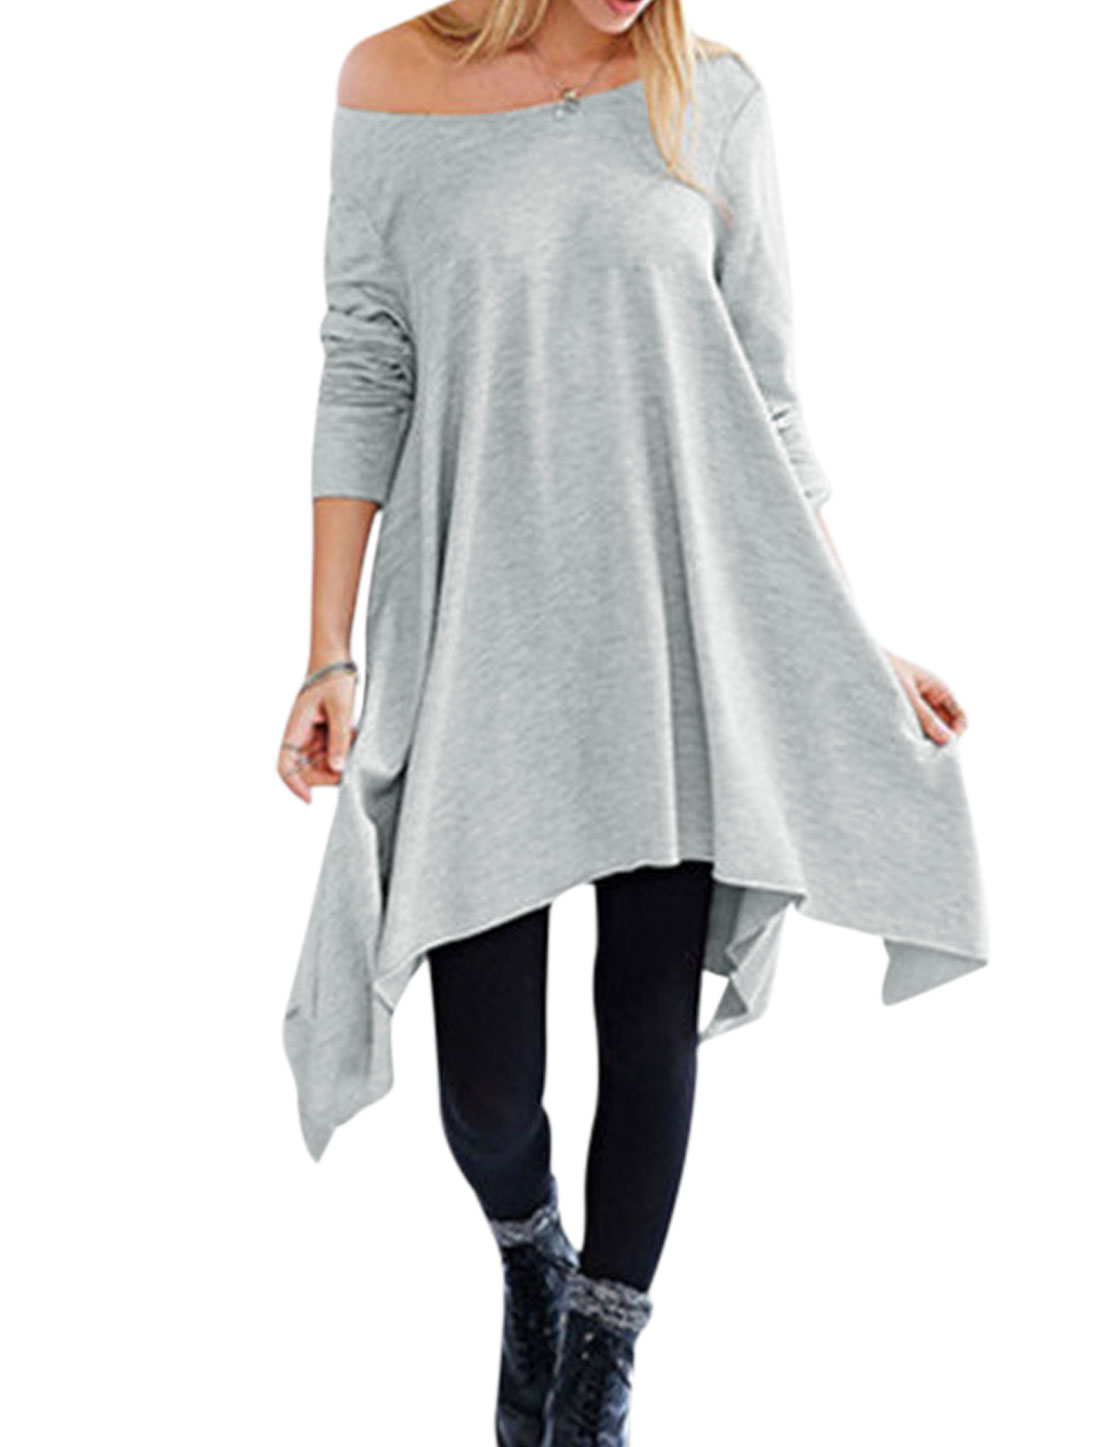 Women Long Sleeves Boat Neck Irregular Hem Loose Tunic Dress Gray XS